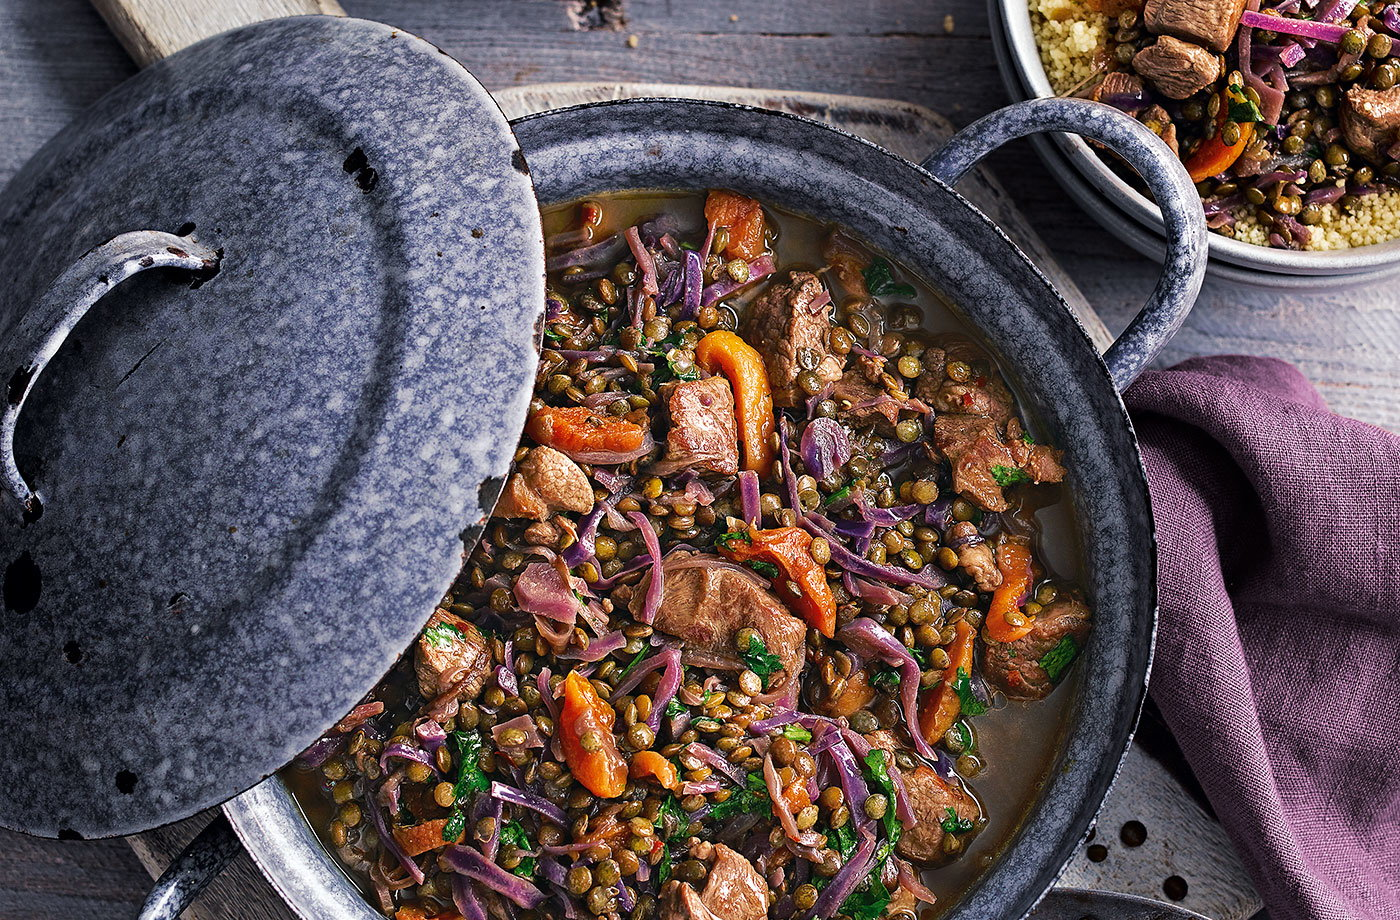 Moroccan lamb and lentil stew recipe